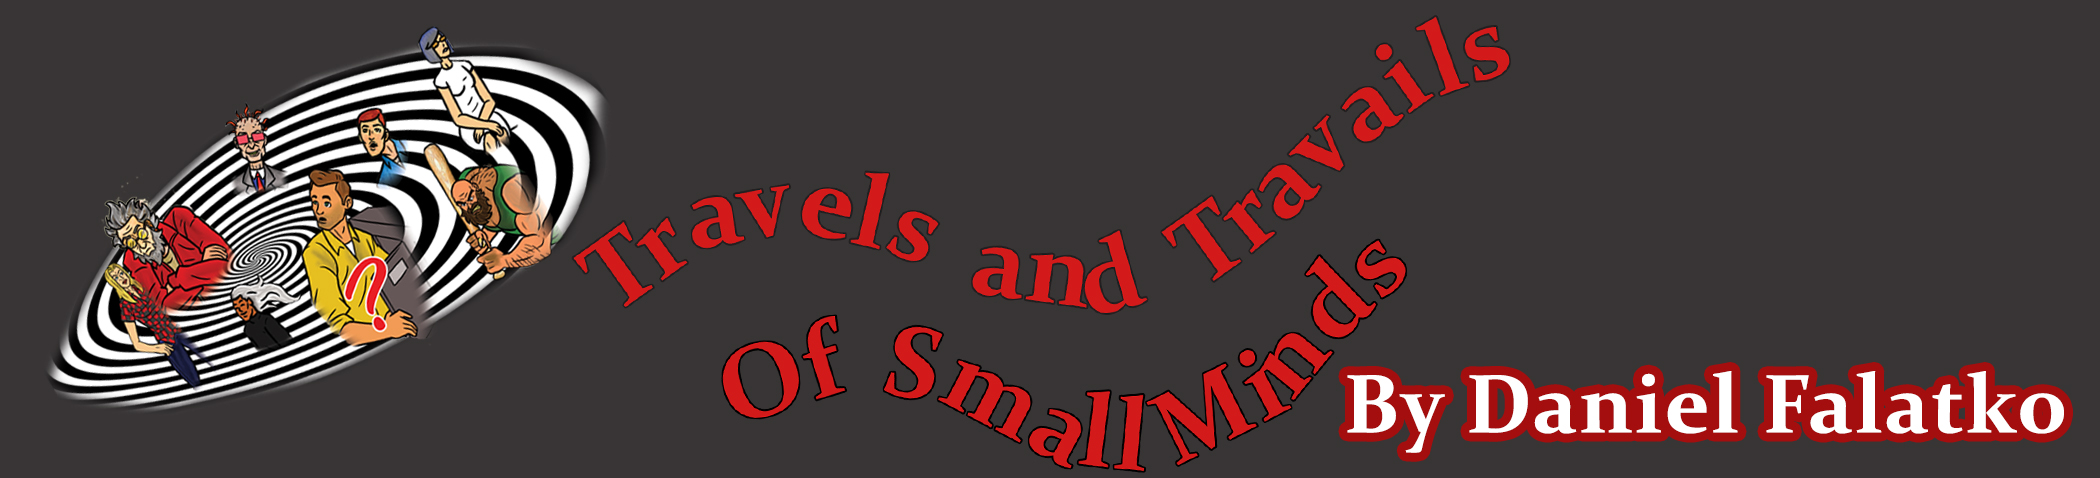 Travels and Travails of Small Minds by Daniel Falatko was published by the Ardent Writer Press on October 1, 2017